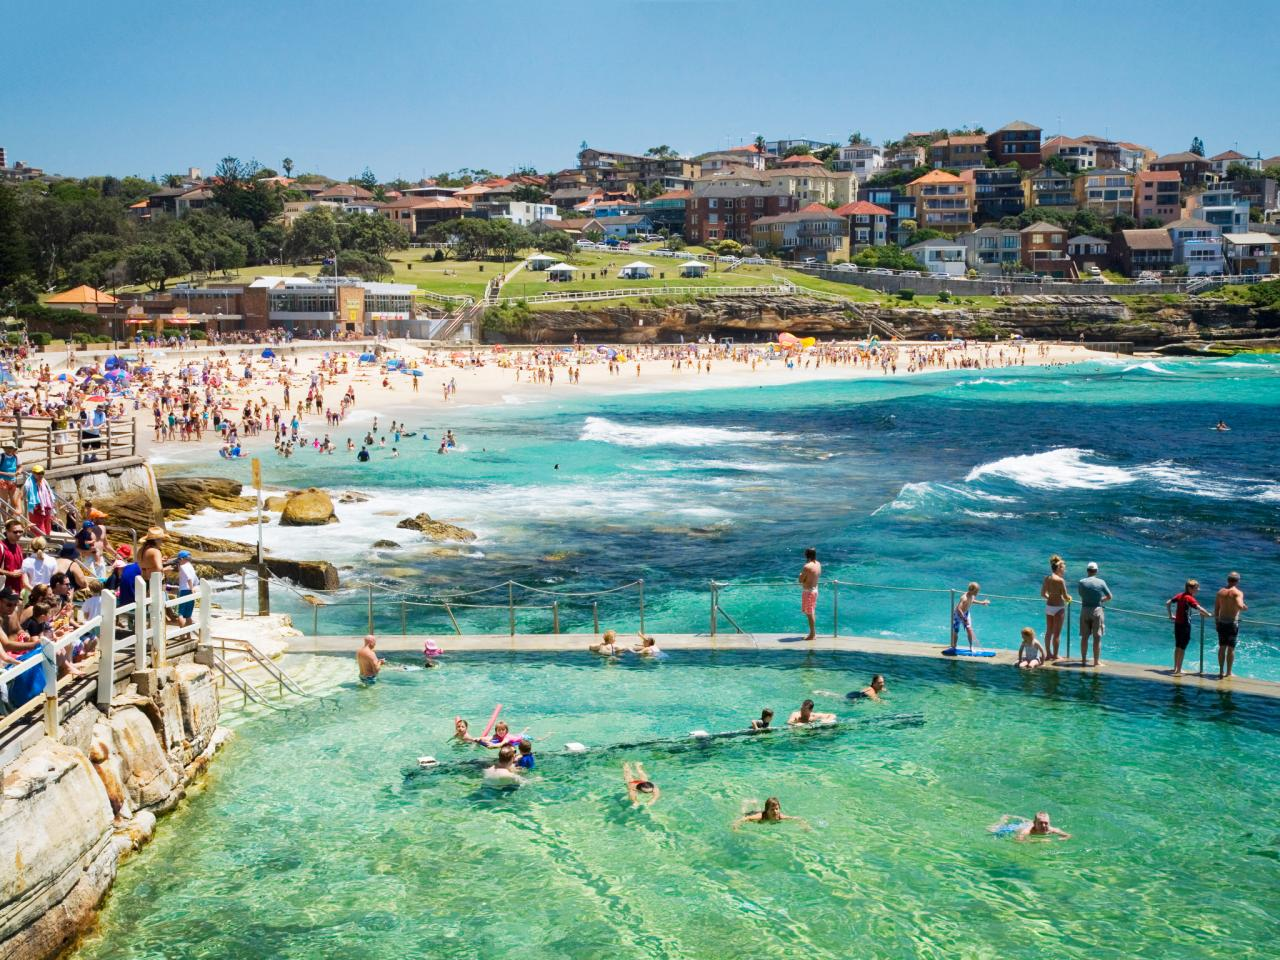 AUSTRALIA'S BEST BEACH TOWNS